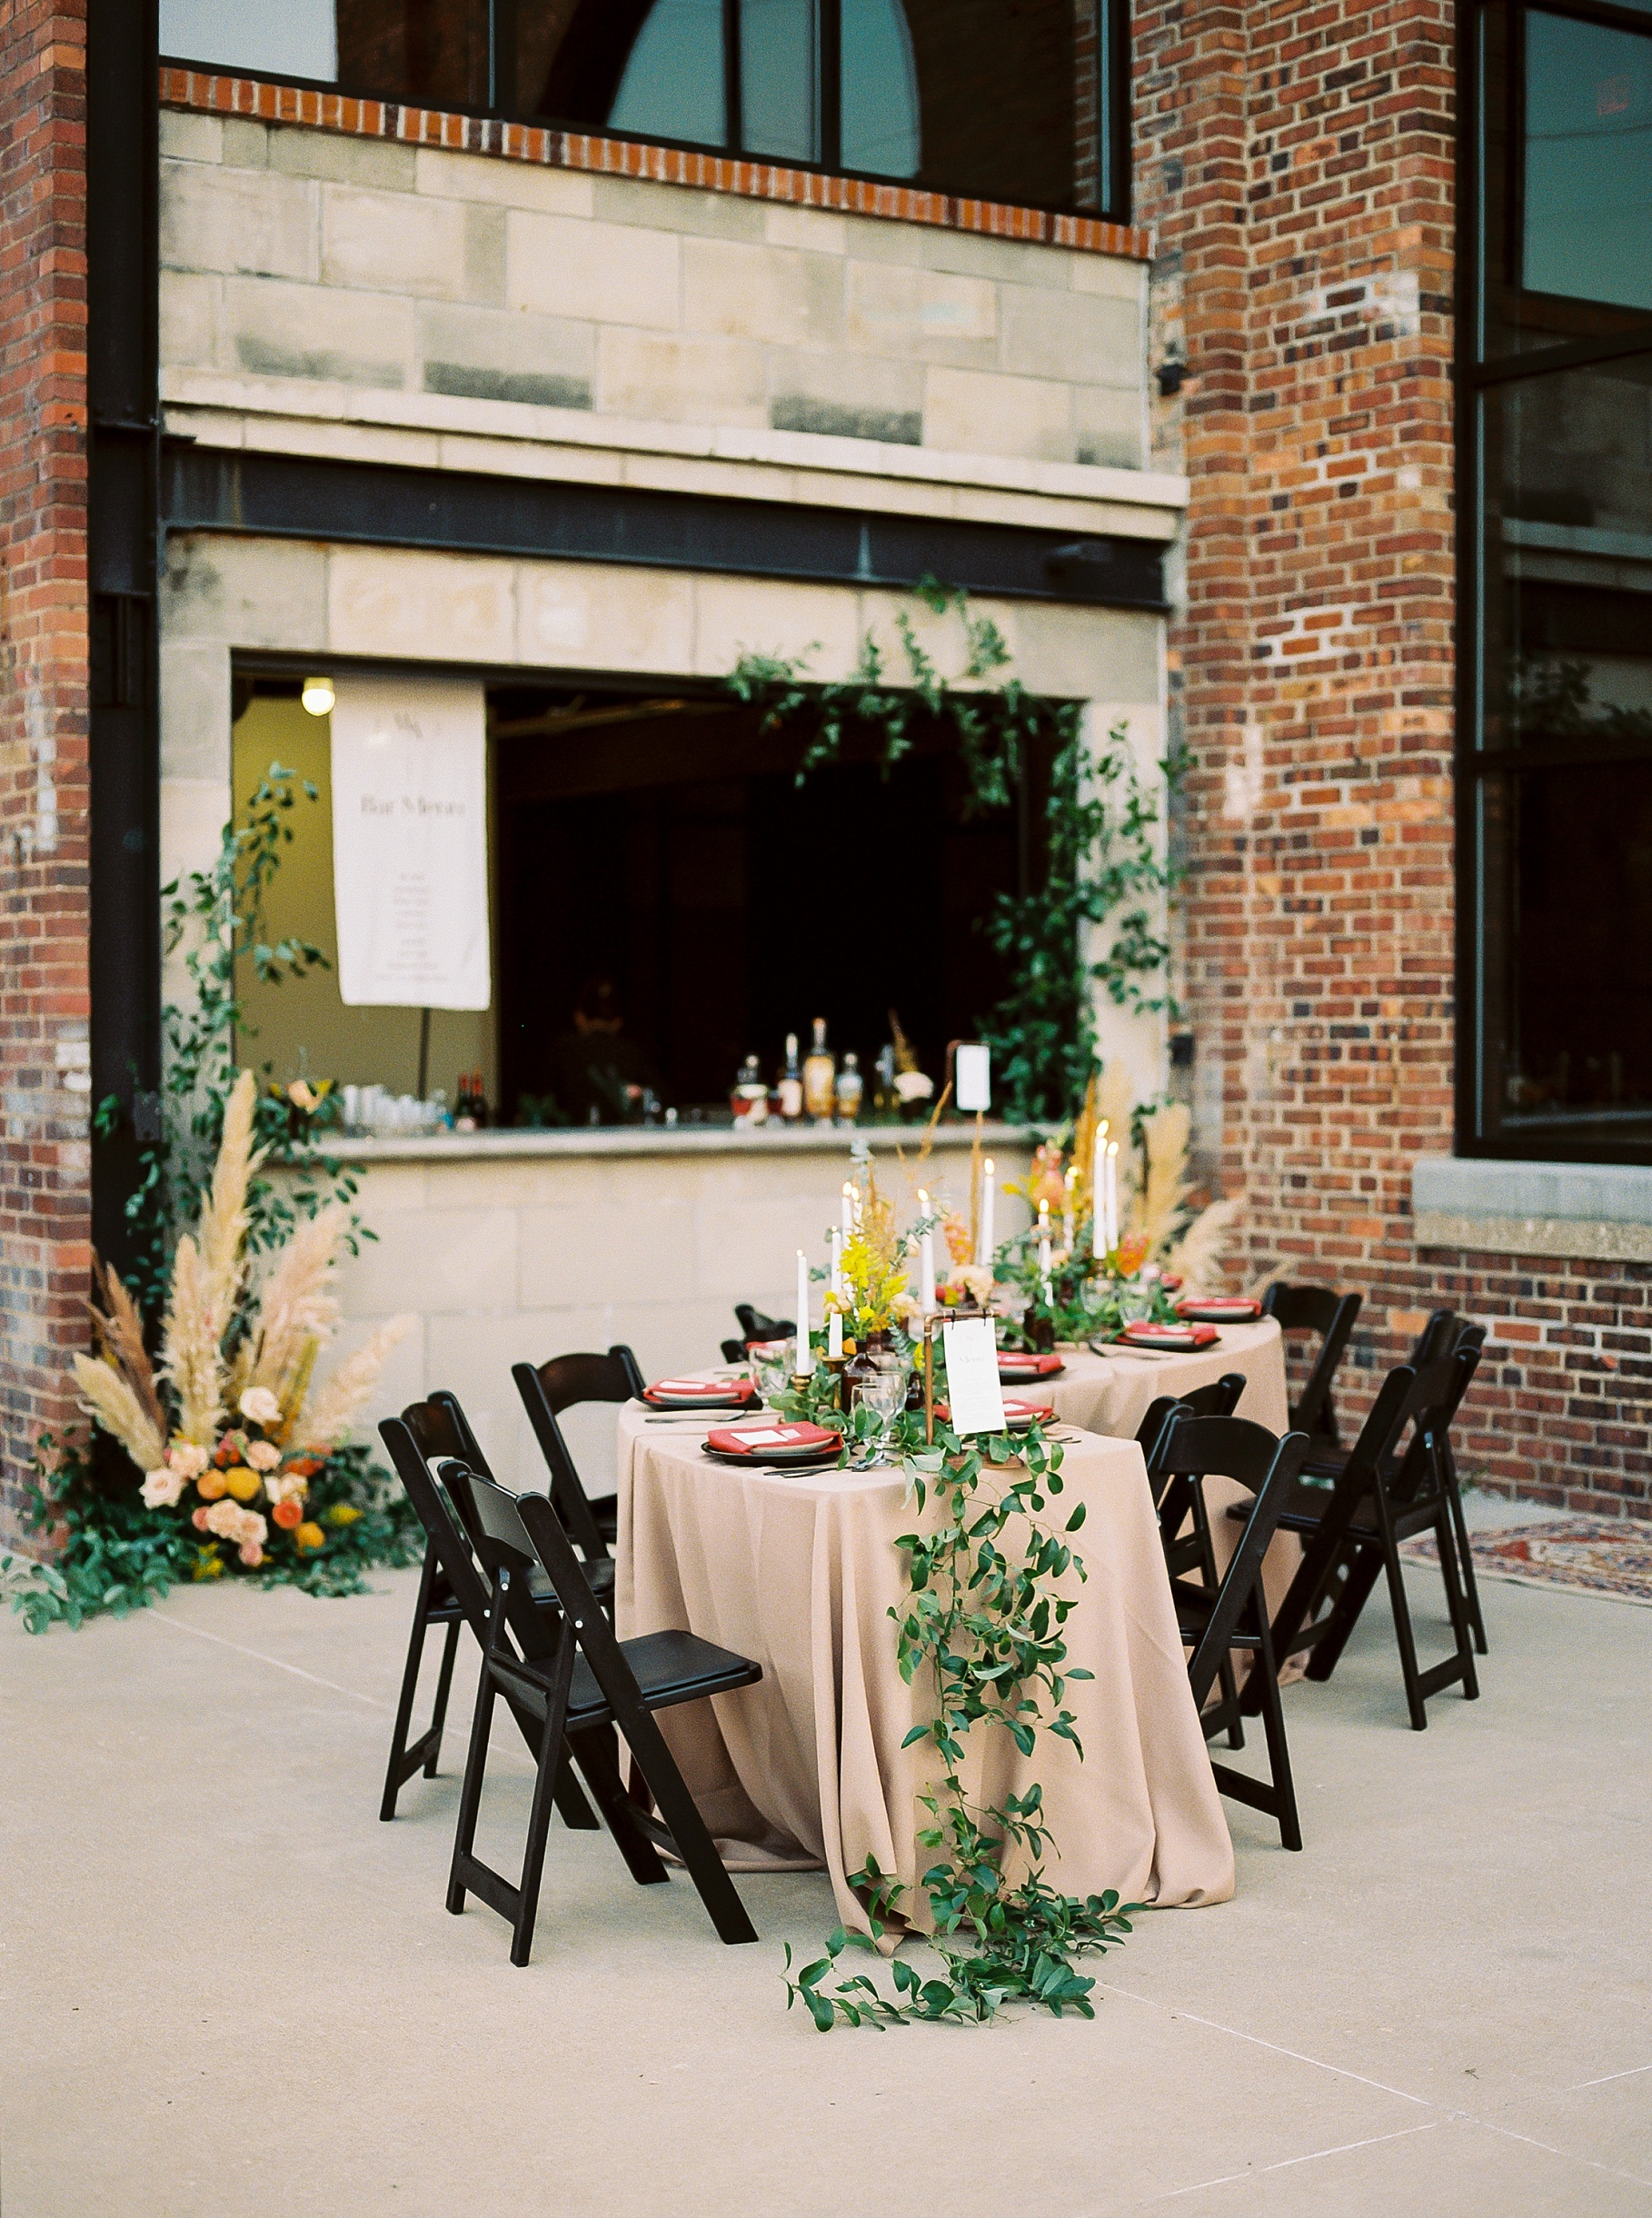 Urban Romance Wedding with Copper Accents at The Millbottom by Kelsi Kliethermes Photography Best Columbia Missouri Wedding Photographer_0055.jpg